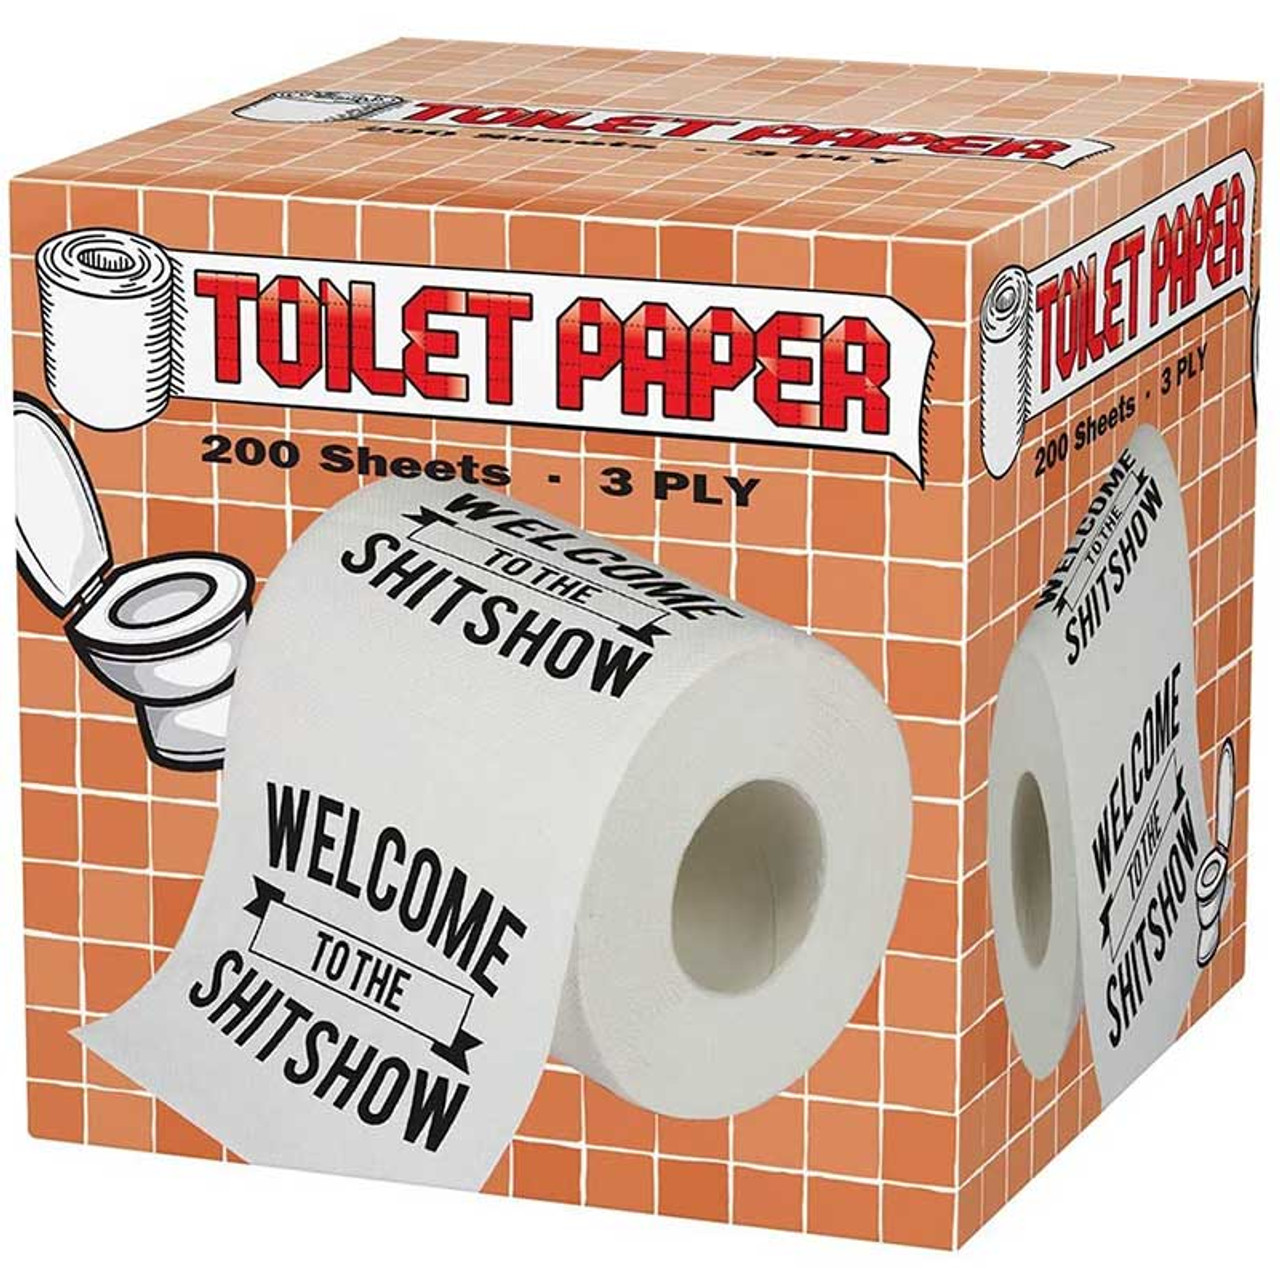 Welcome to the Sh*t Show Toilet Paper